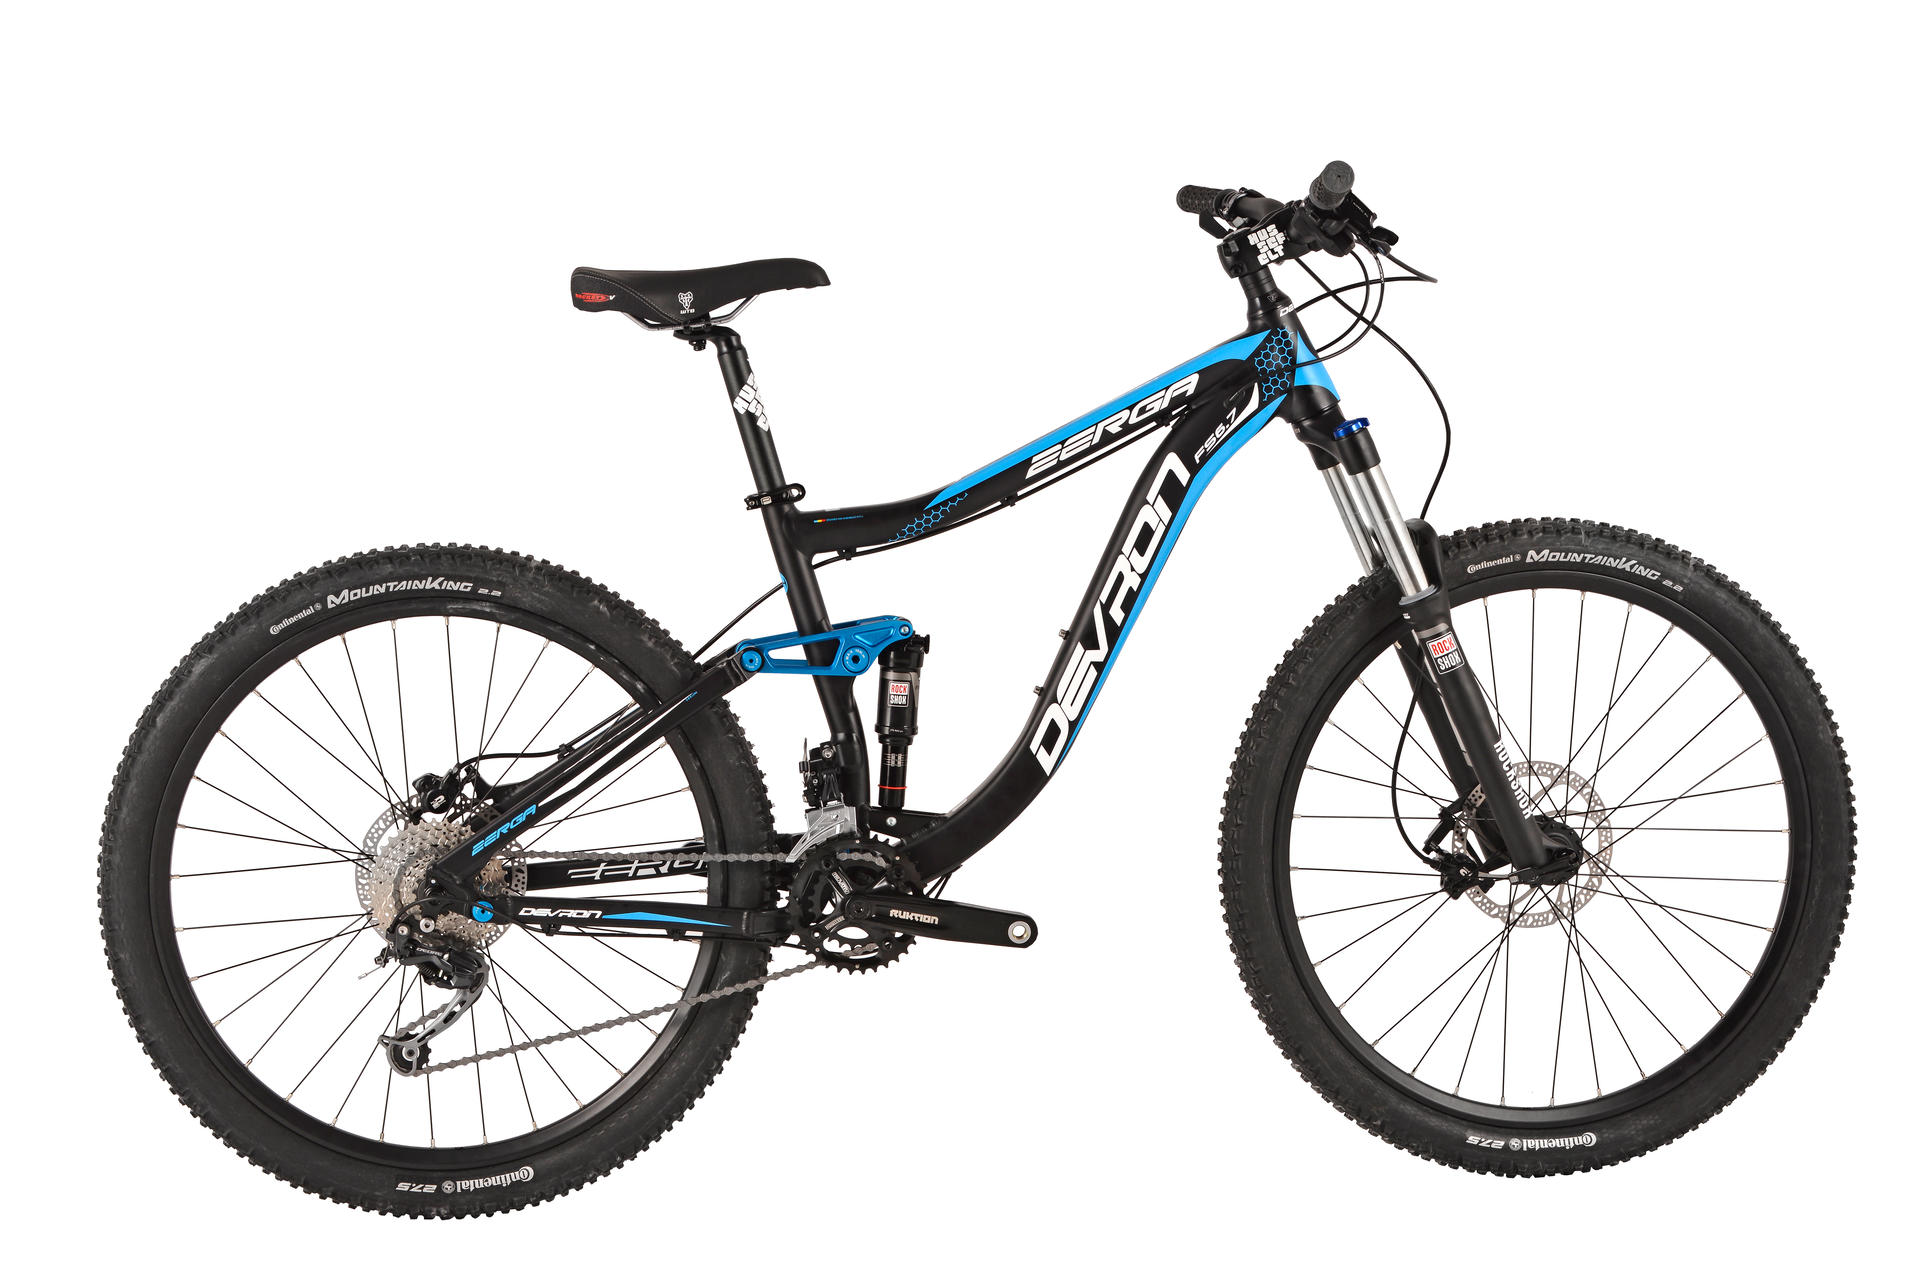 Mountain bike full suspension Devron Zerga FS6,7 430 mm Black-Blue